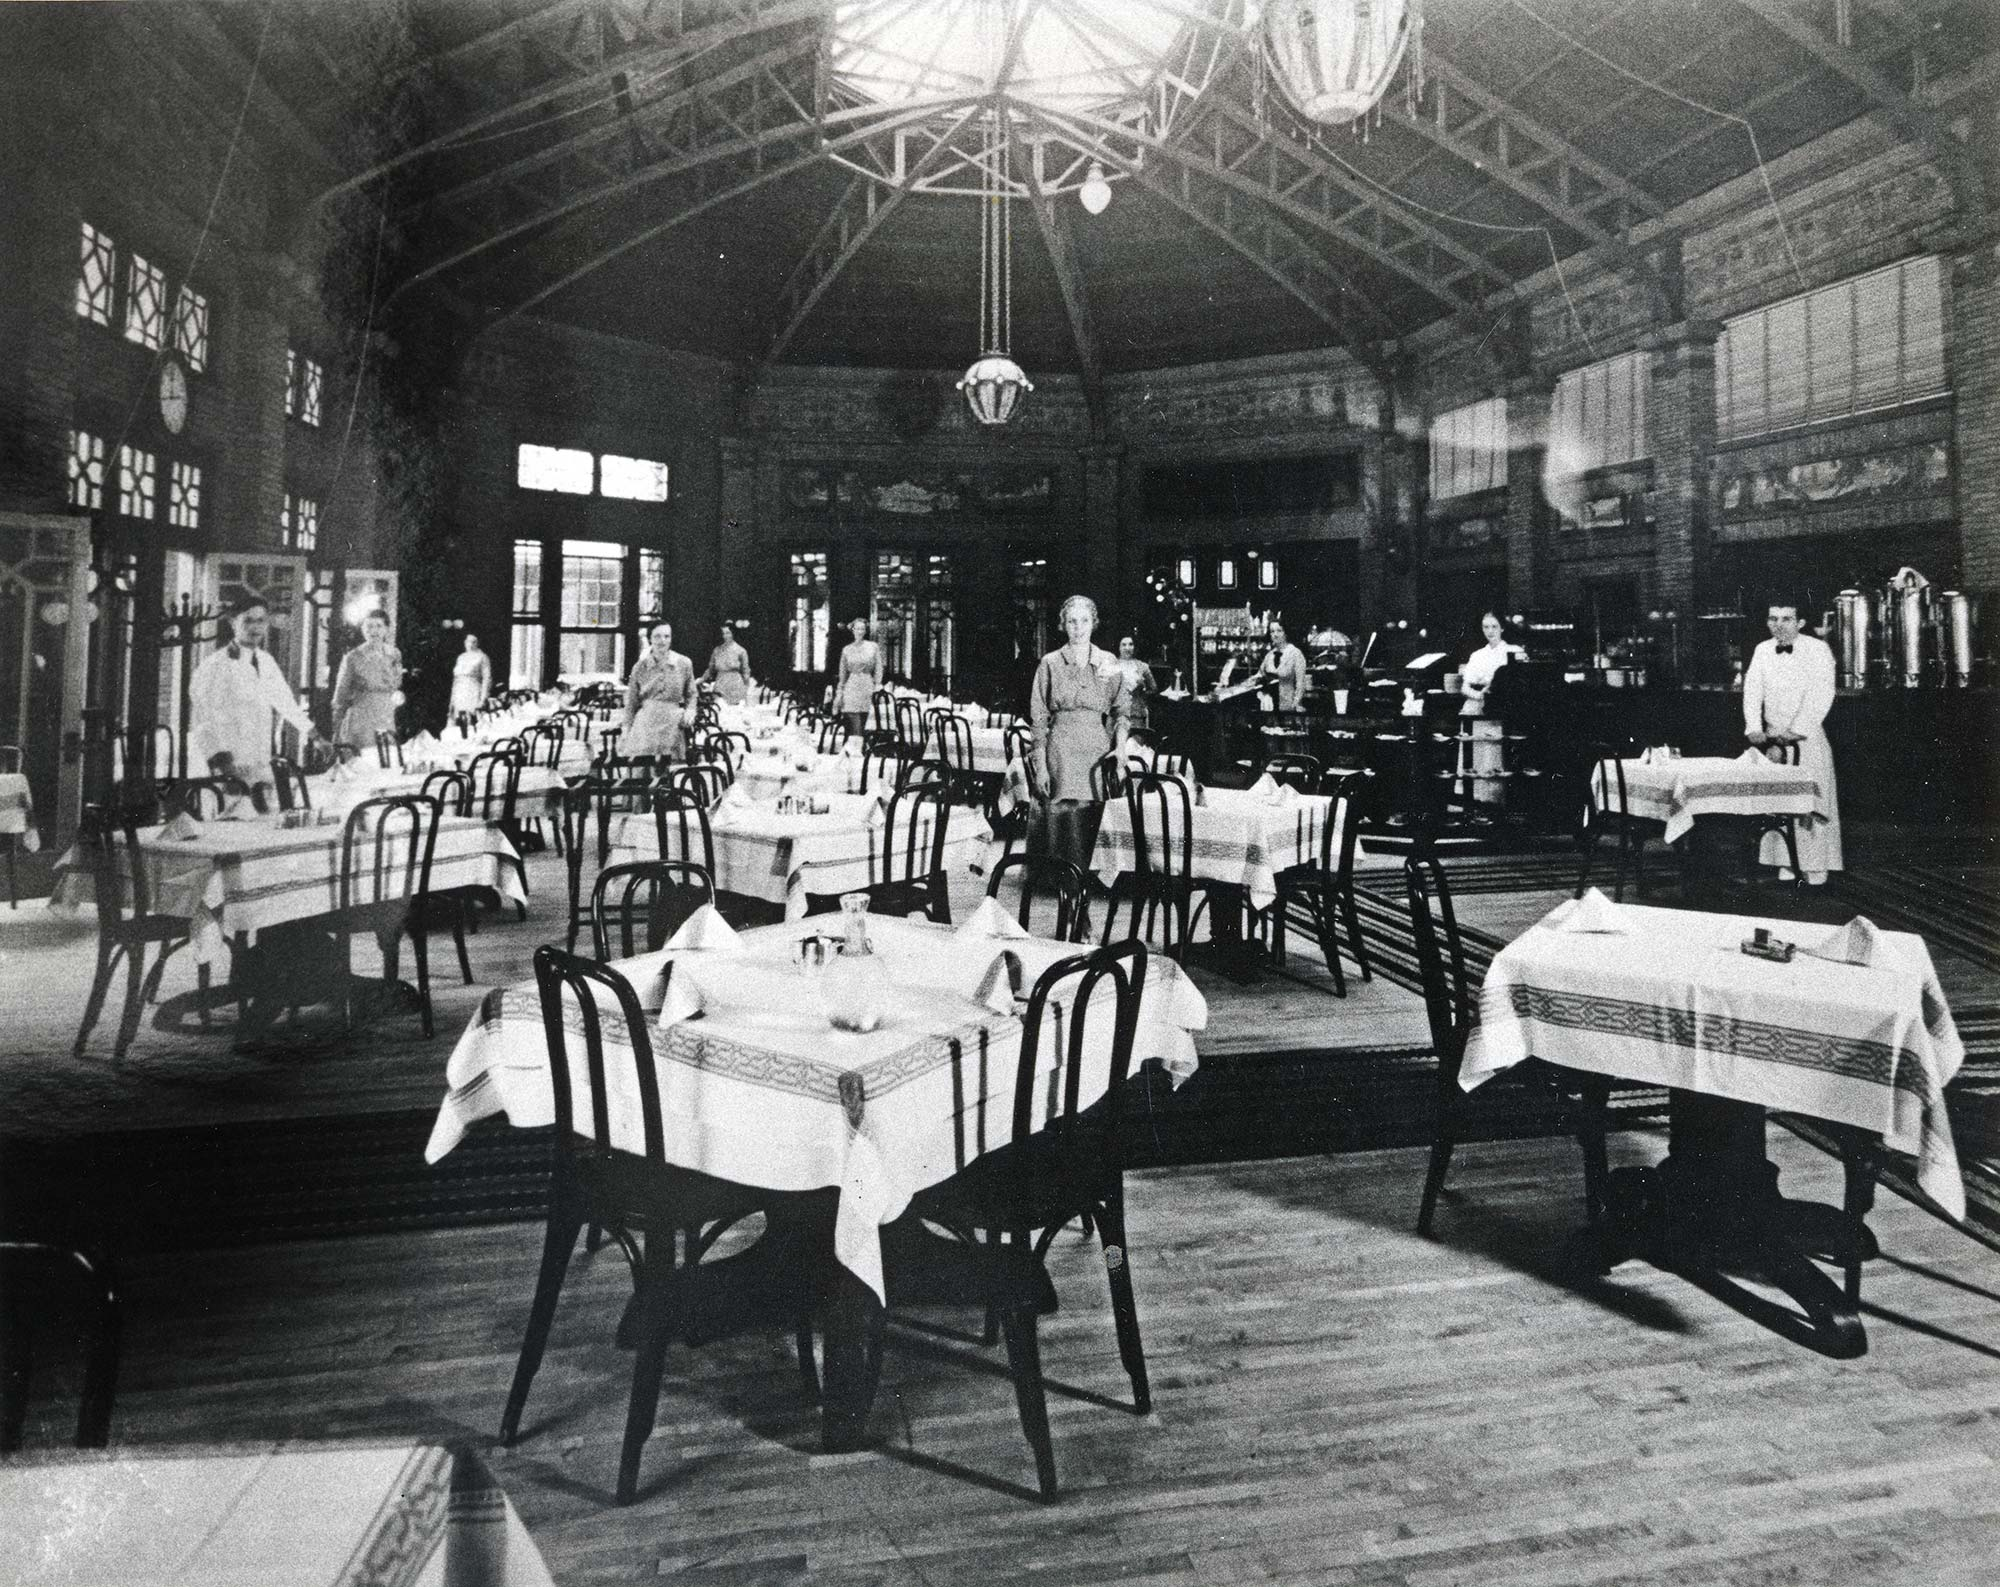 View of the Café Brauer restaurant in Great Hall with waiters and waitresses, ca. 1925.